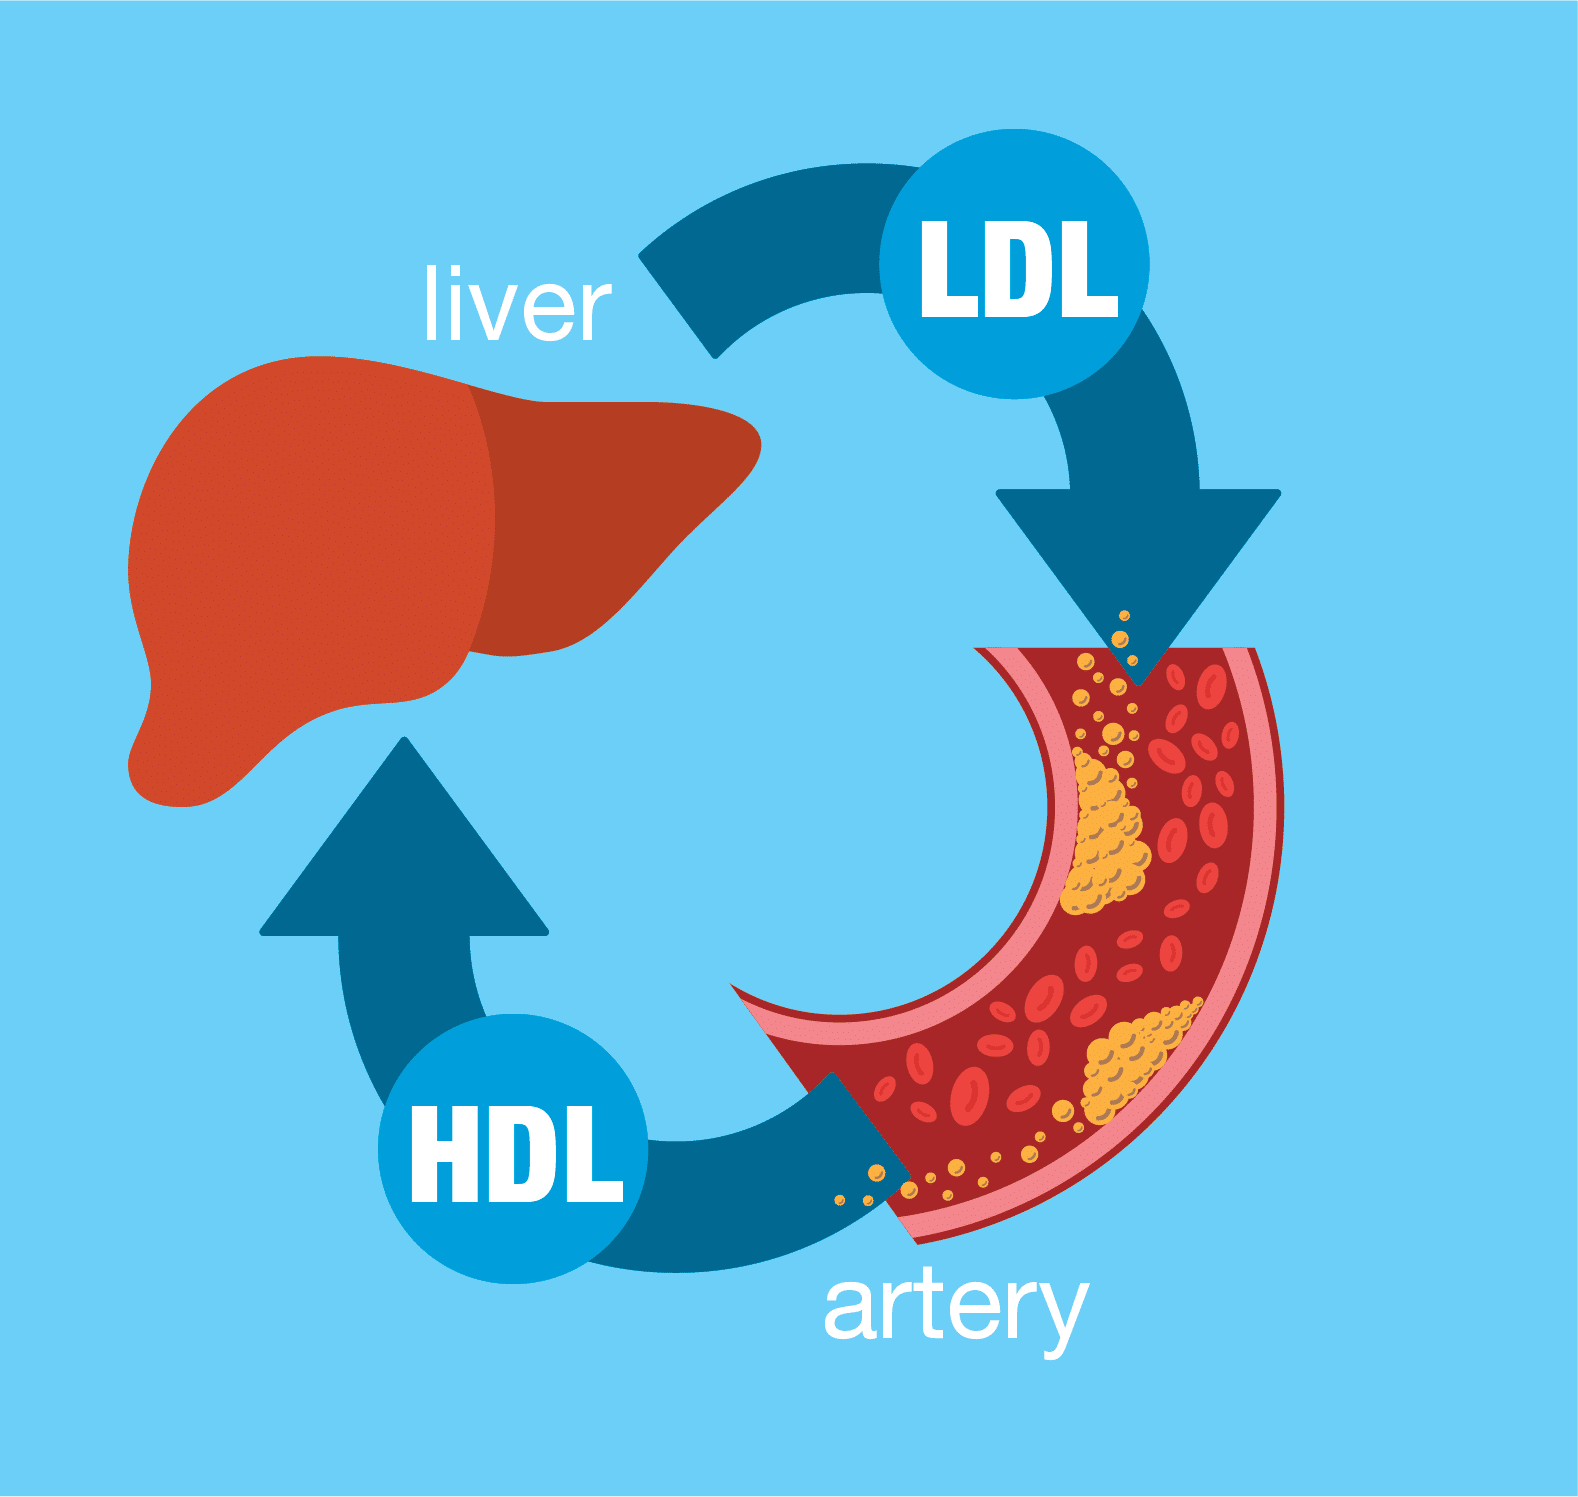 Did you know that there is good cholesterol and bad cholesterol?